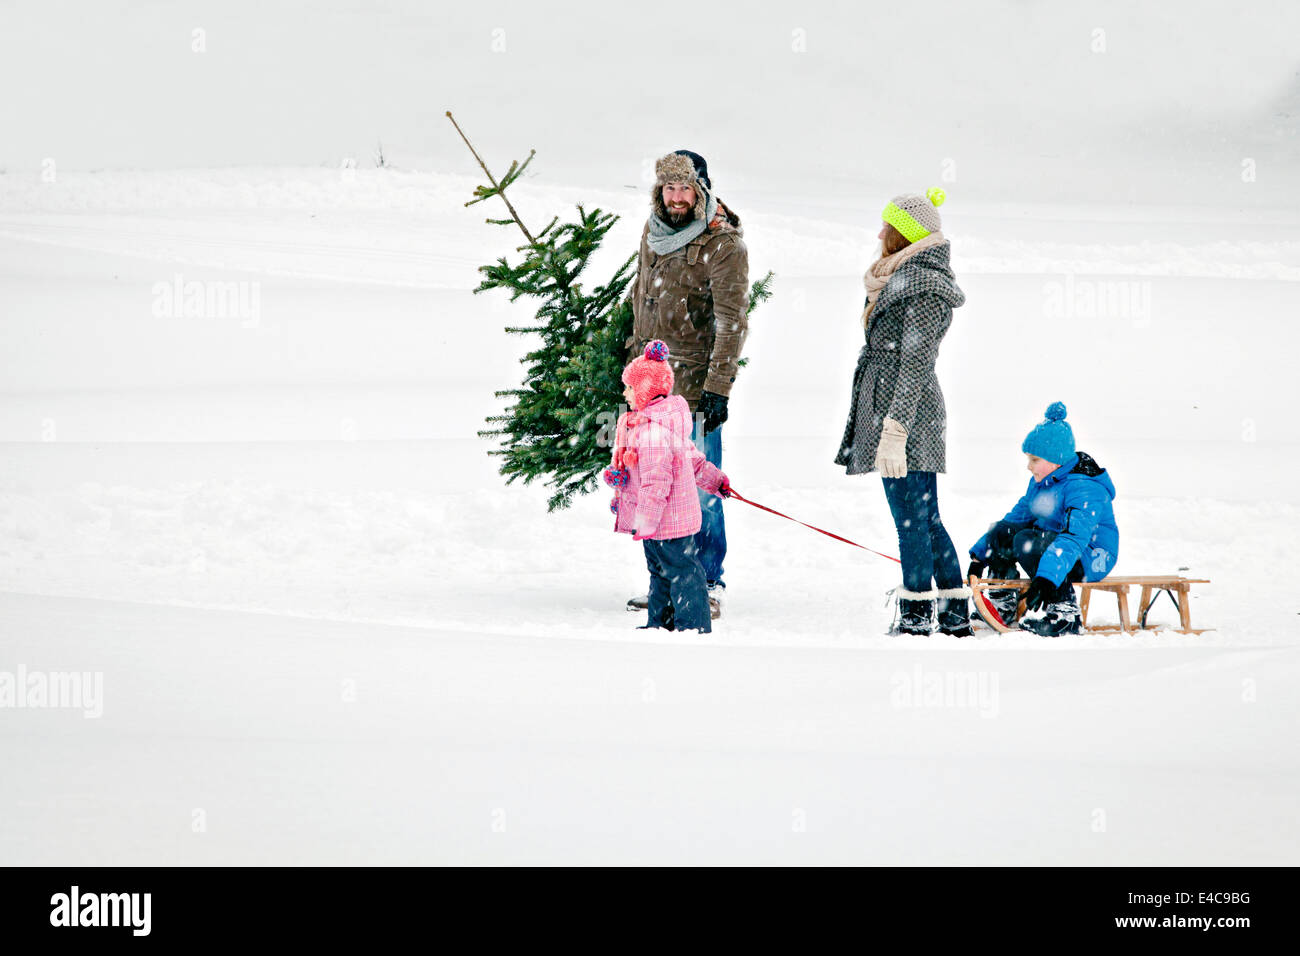 Family with two children carries Christmas tree in snow-covered landscape, Bavaria, Germany - Stock Image